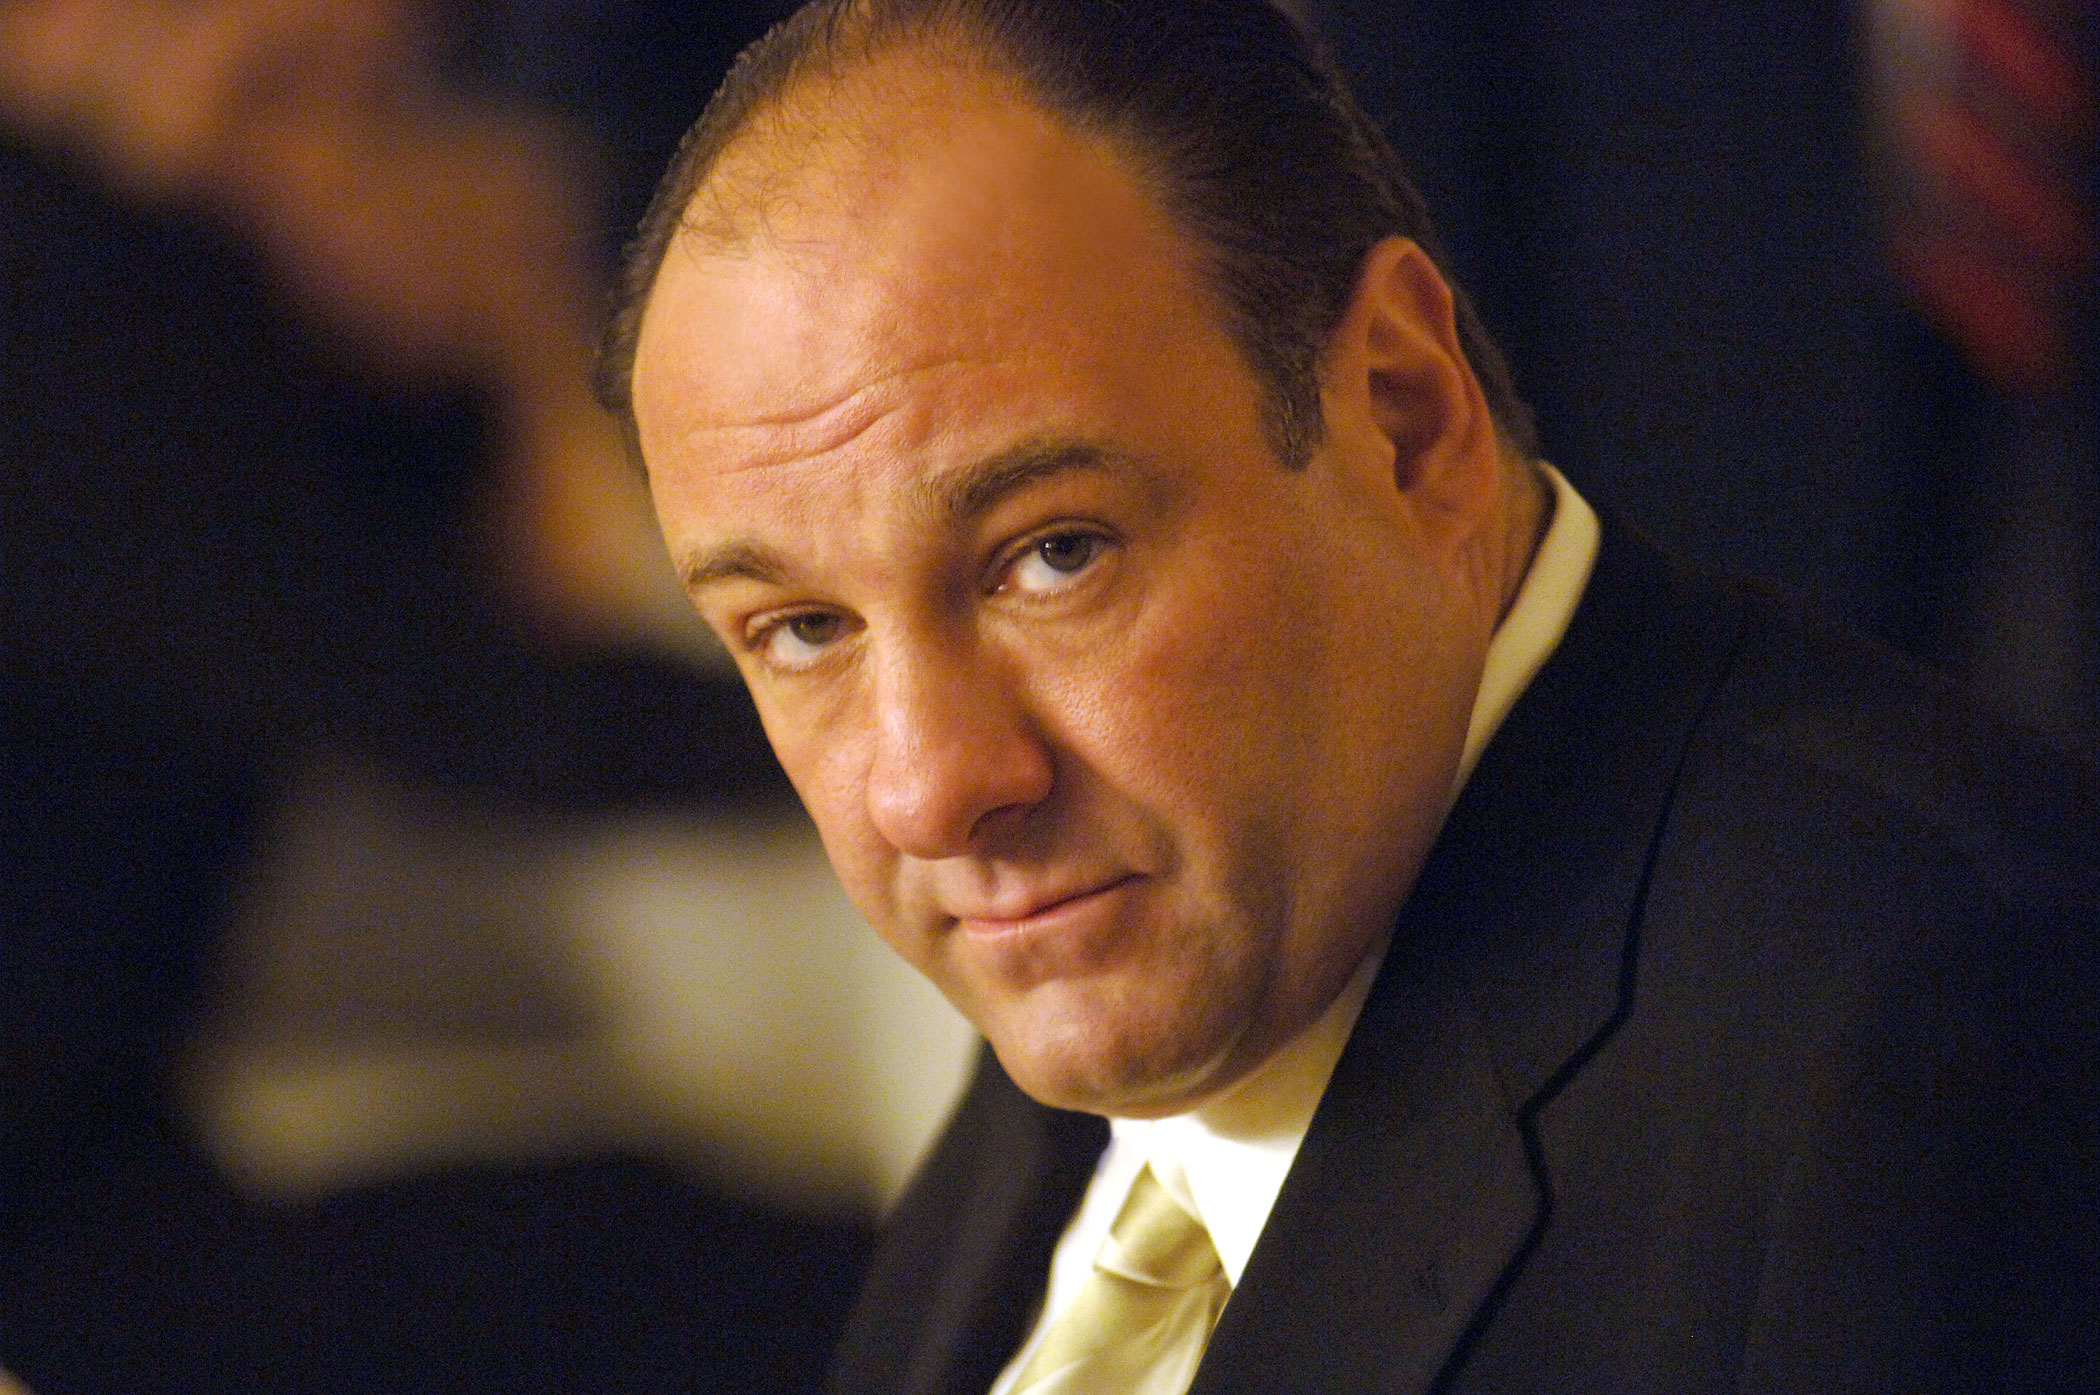 In perhaps his most famous role, Gandolfini portrayed mob boss Tony Soprano in HBO's The Sopranos.